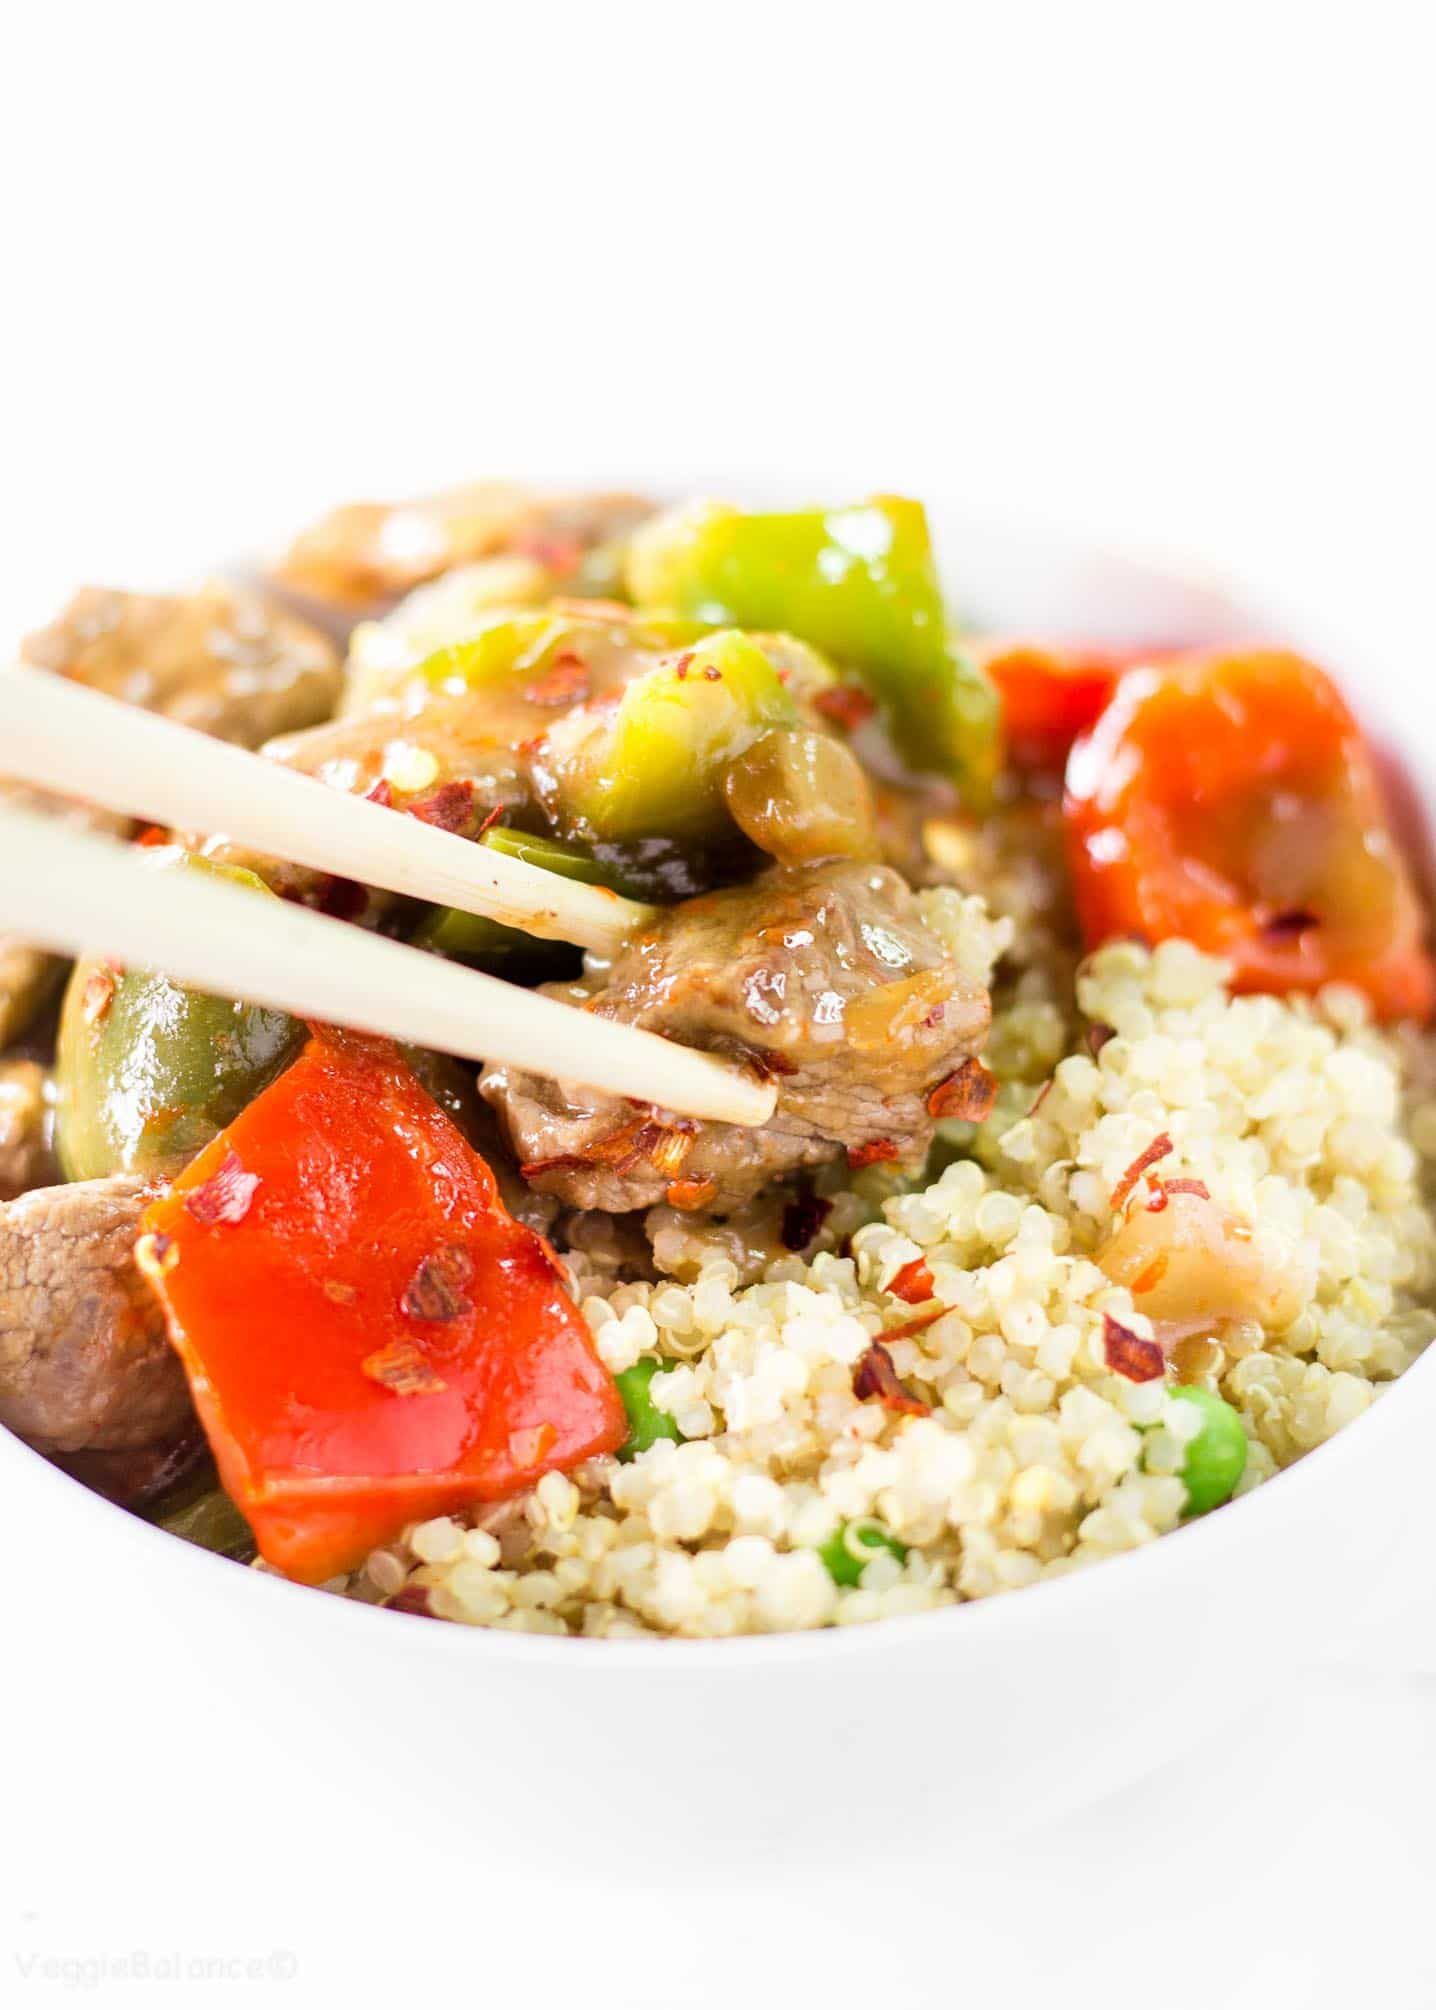 Chinese Pepper Steak on rice